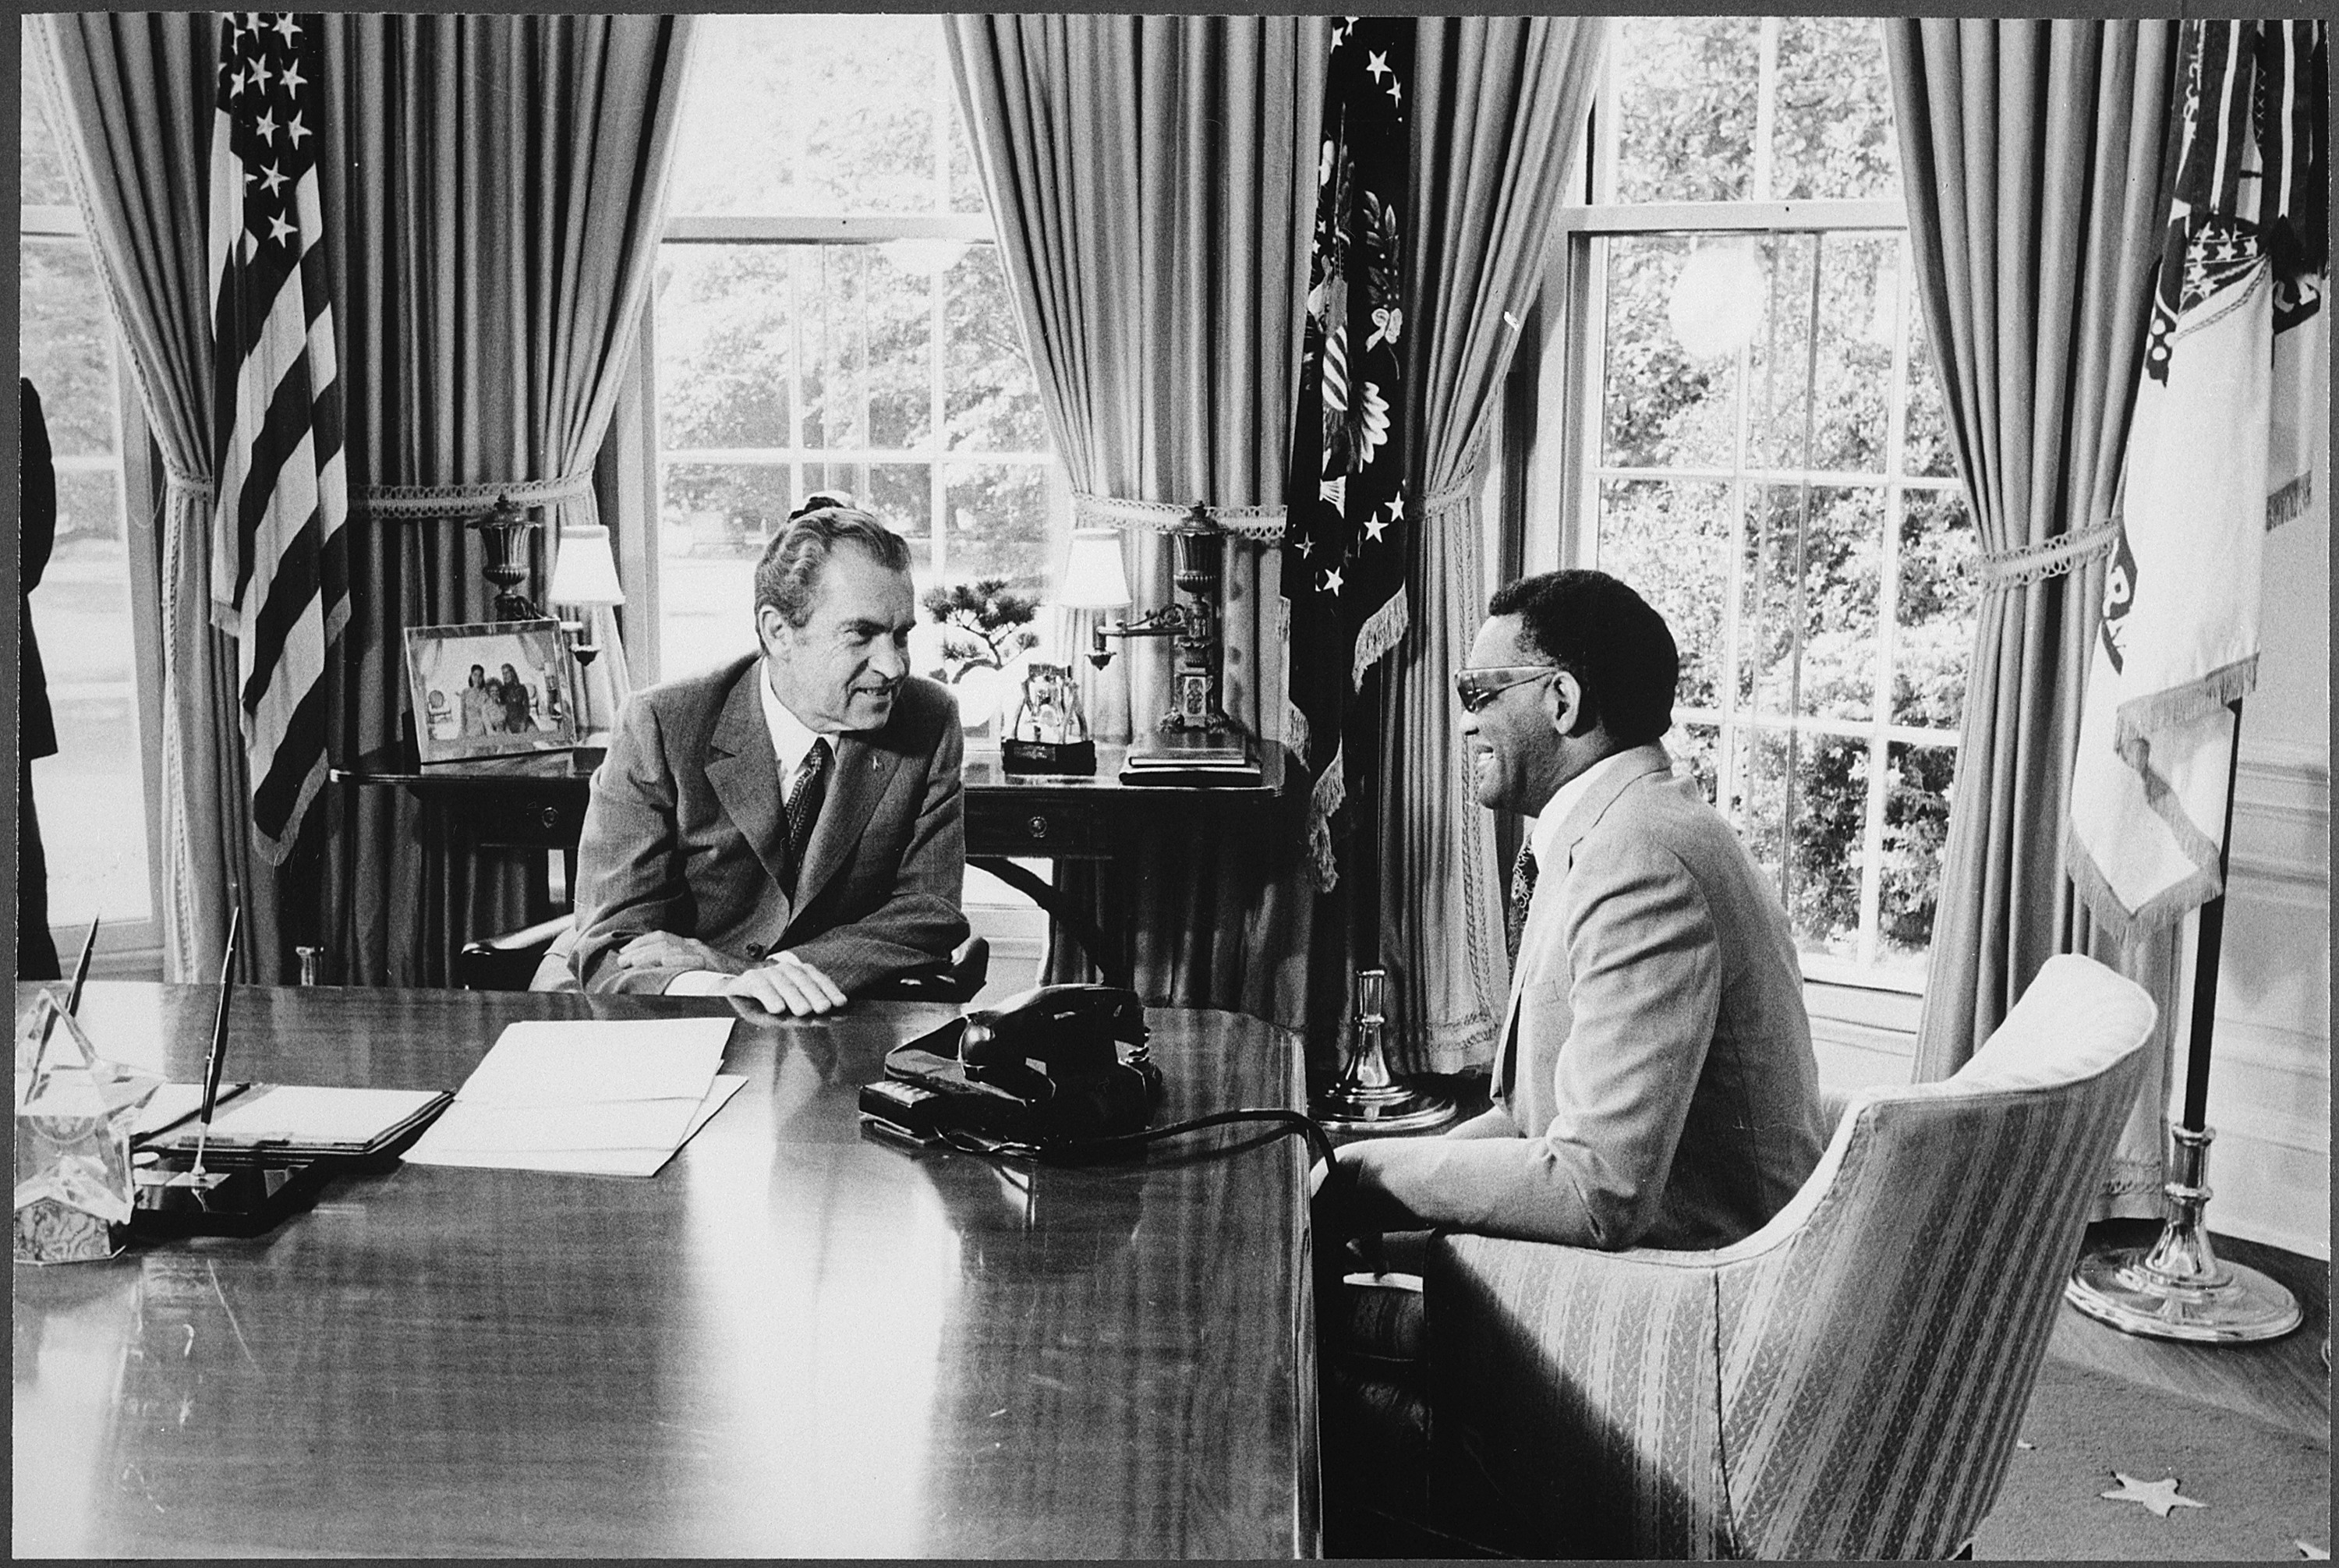 U.S. President Richard Nixon meets with Ray Charles in the Oval Office of The White House, Washington, D.C., September 15, 1972